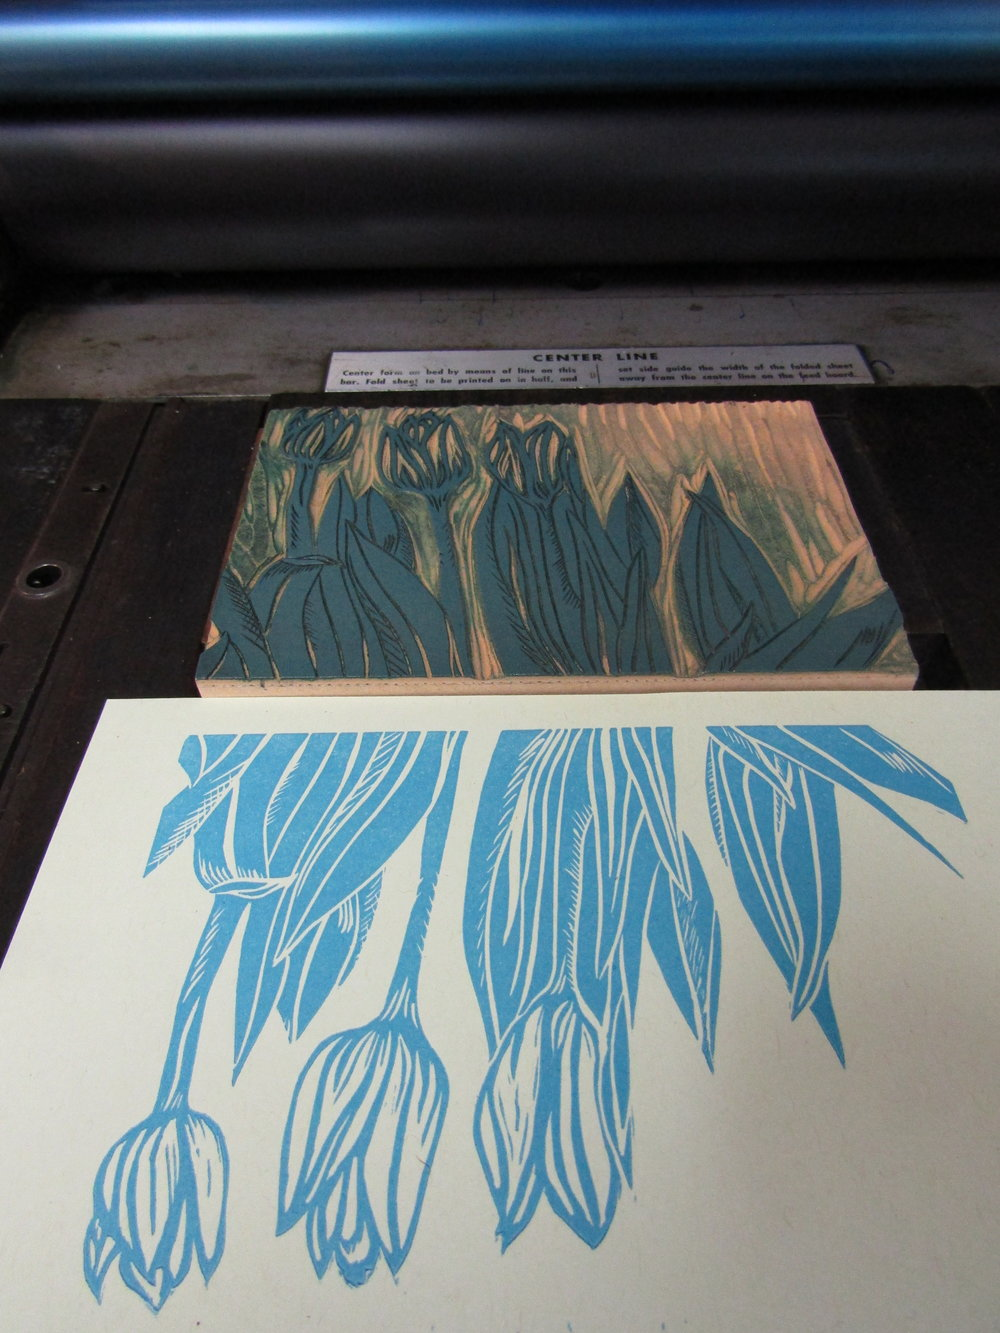 Printing the tulips - one of my personal favorites!